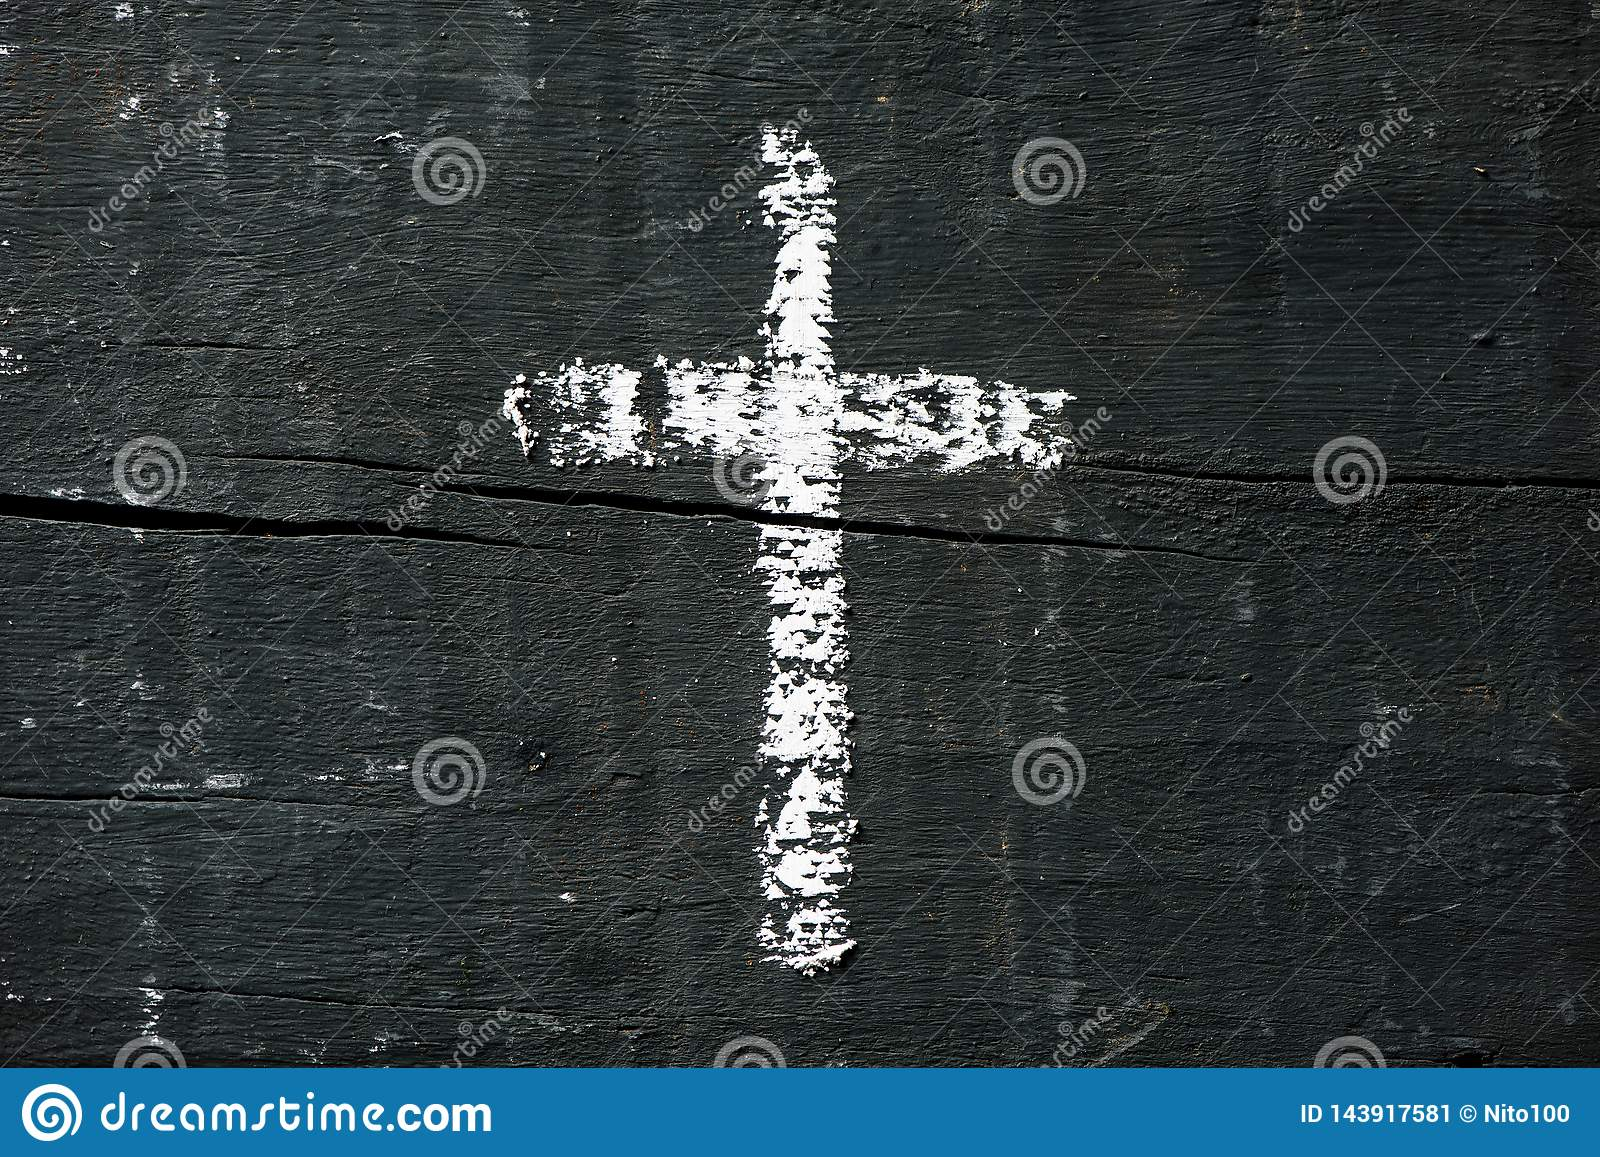 Christian cross on a dark gray wooden surface